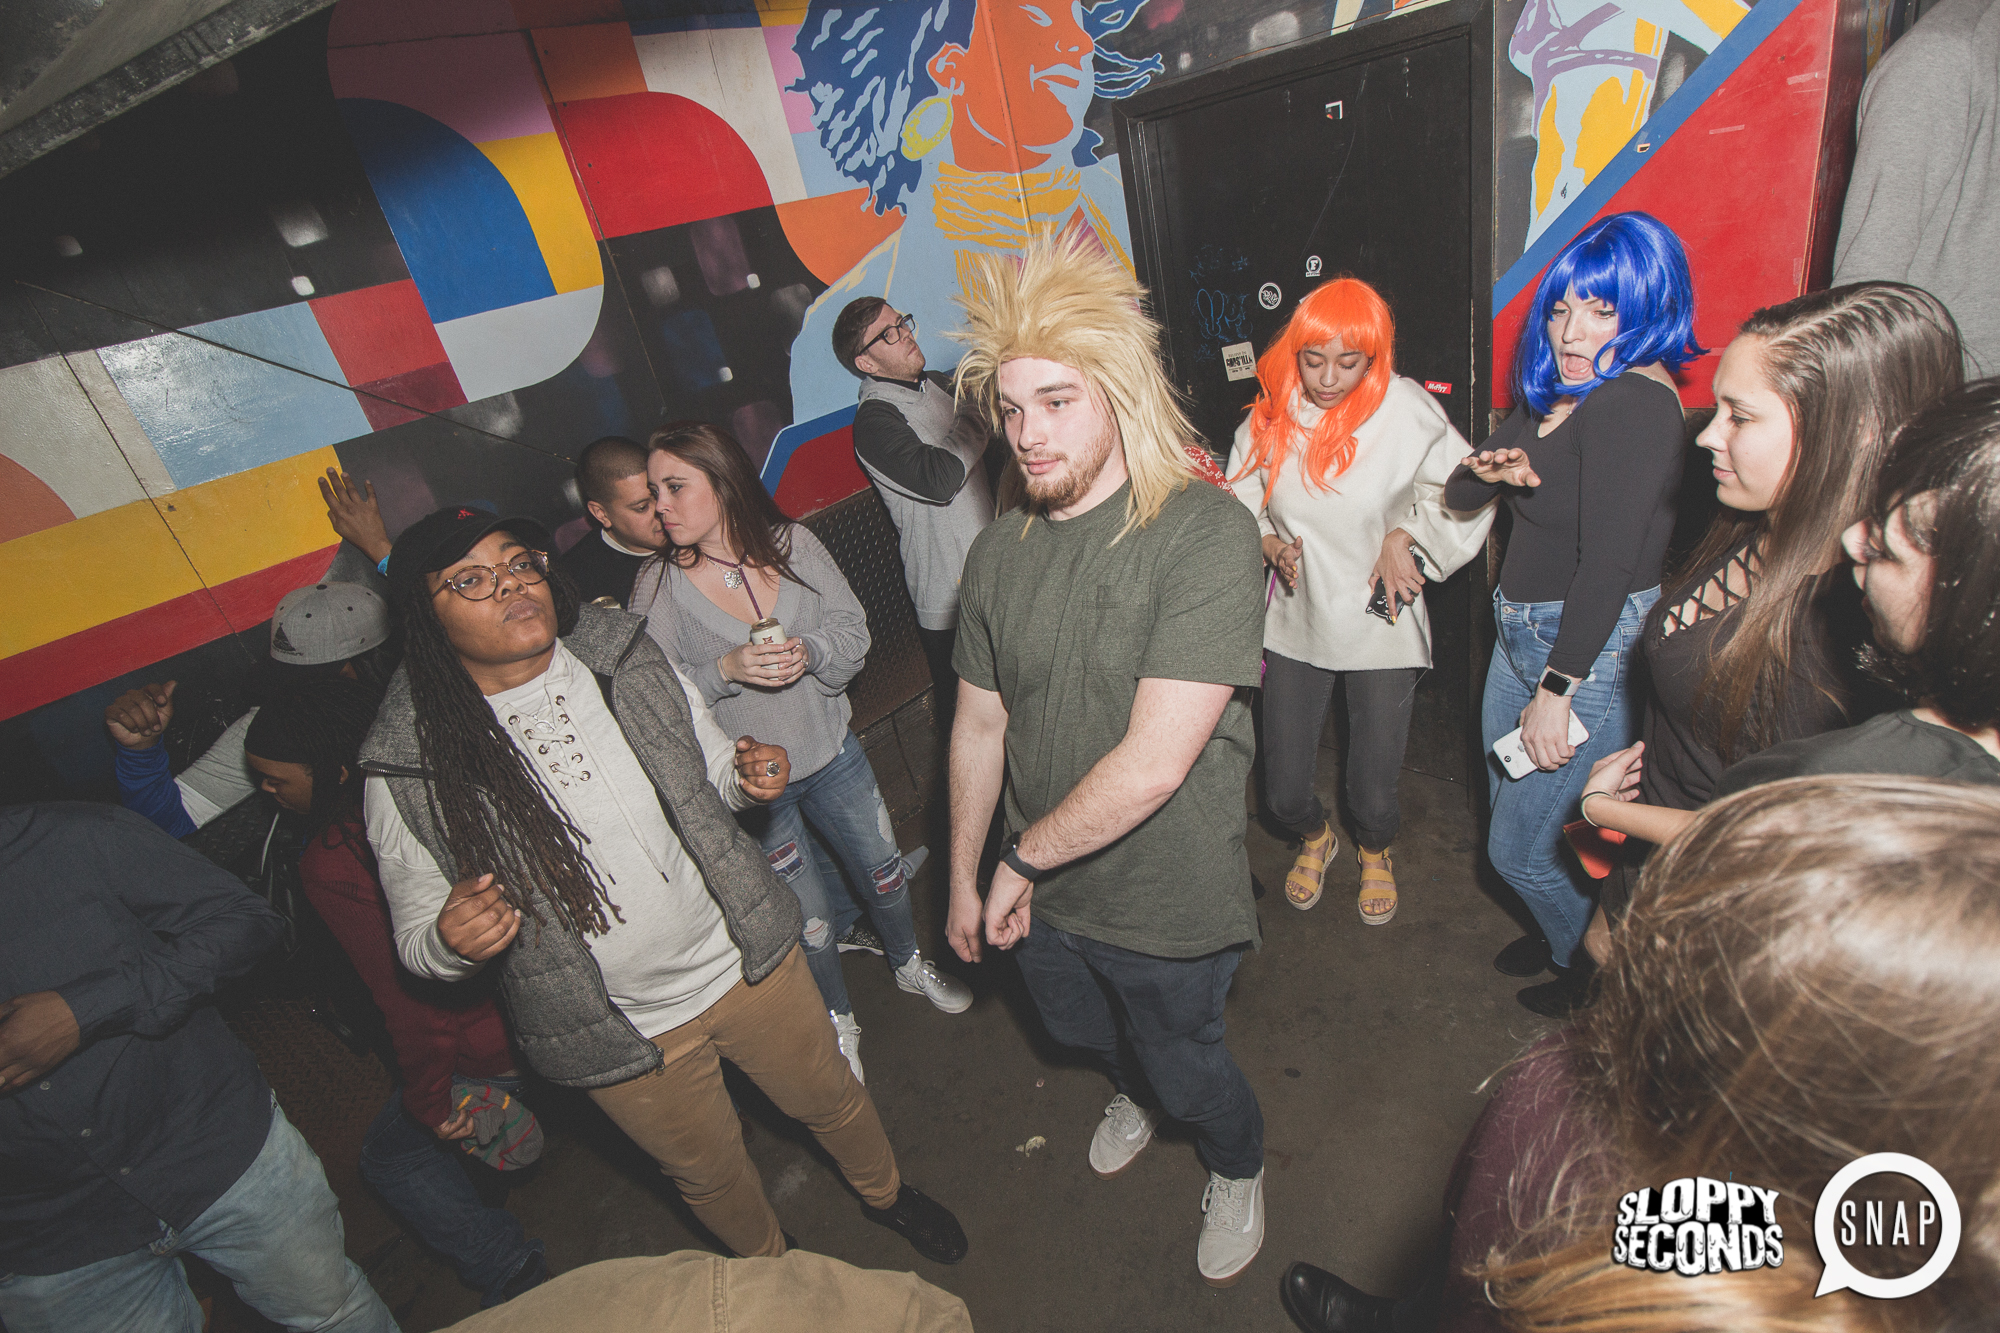 56Sloppy Seconds March2019 oh snap kid atlanta.JPG